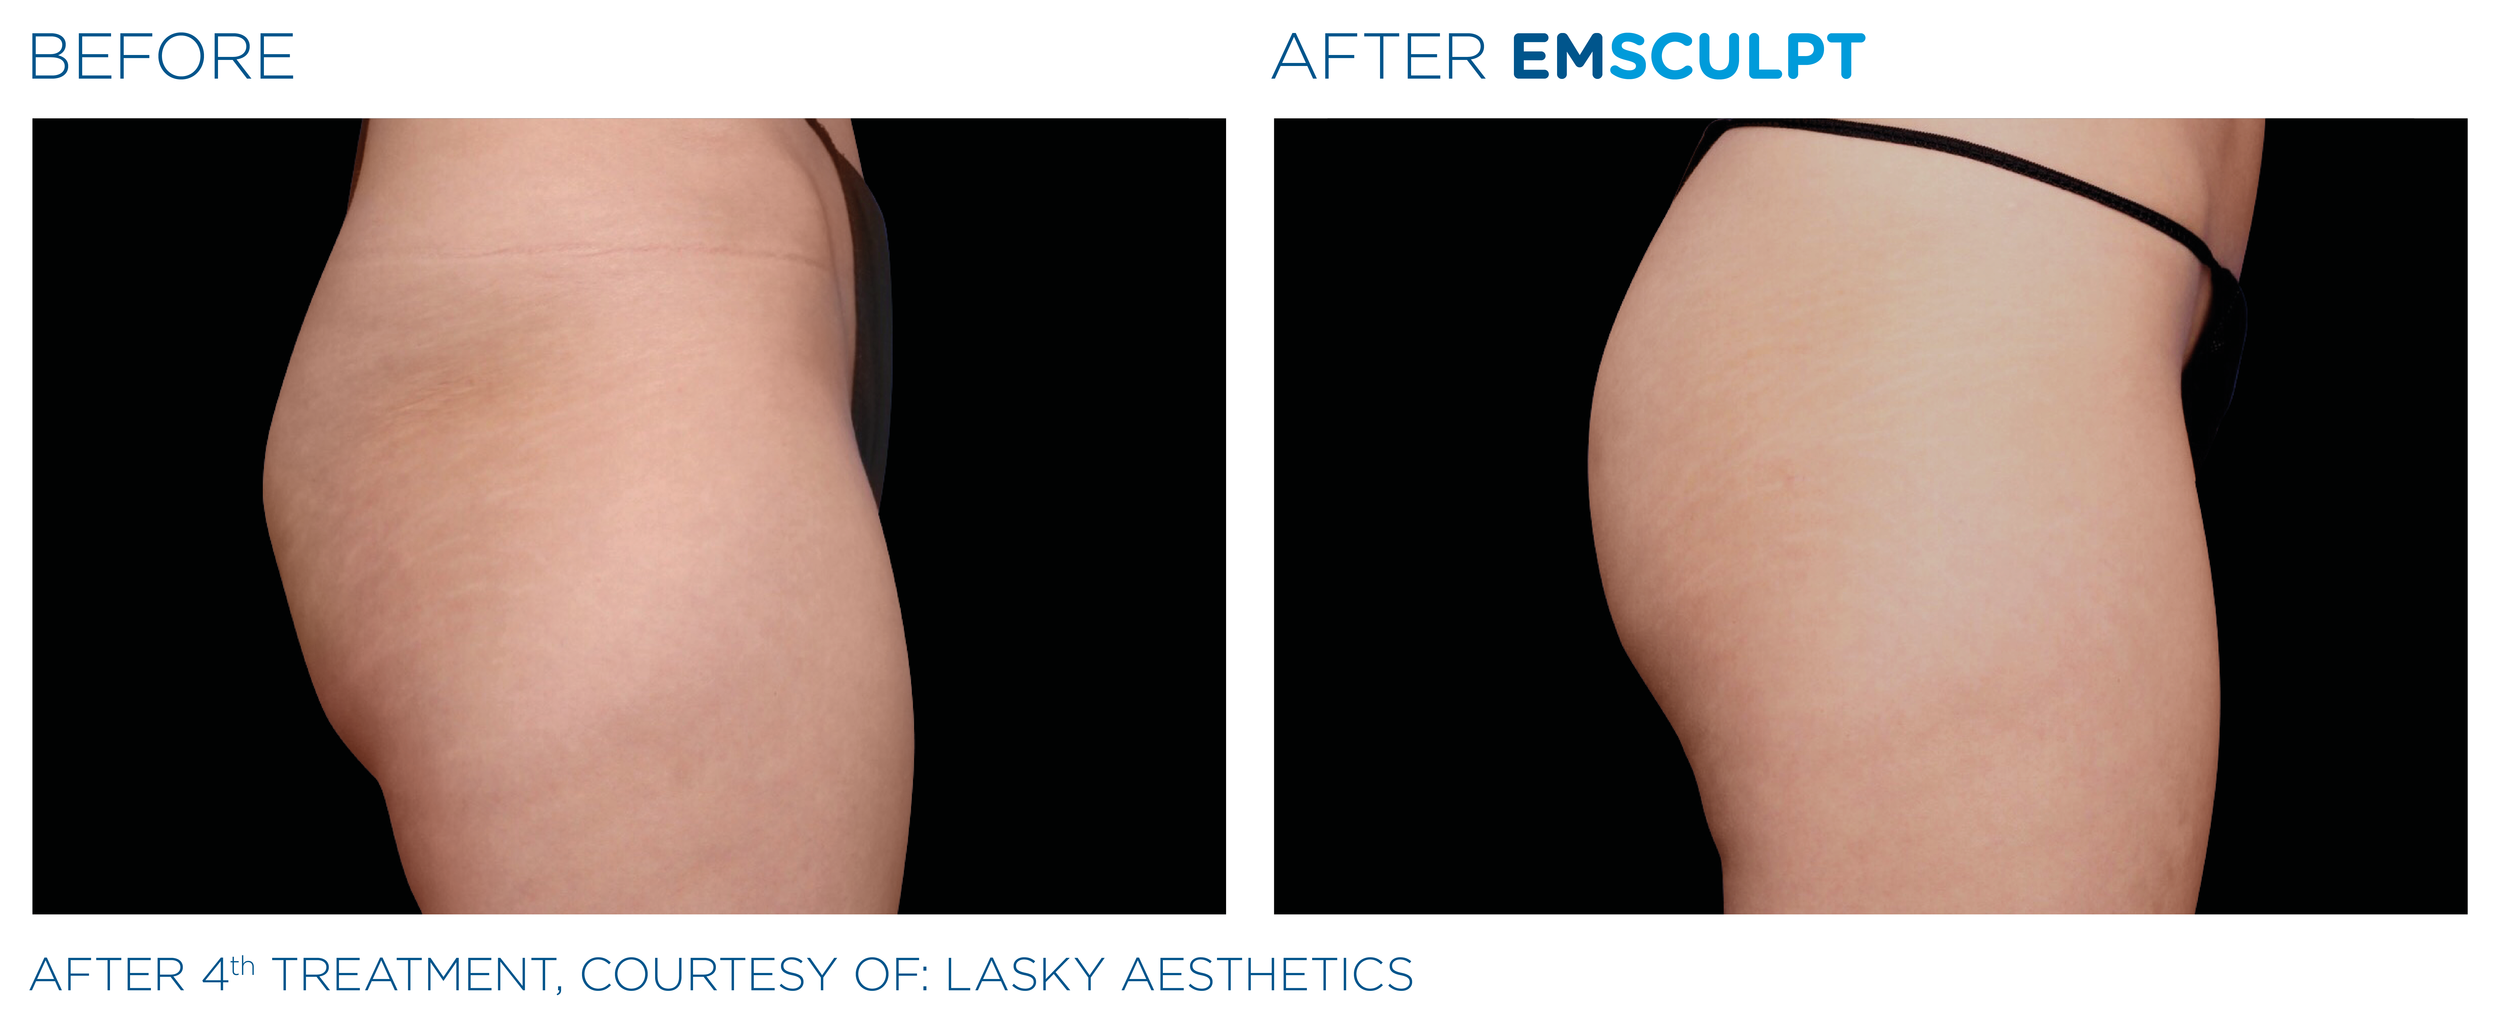 Emsculpt_PIC_Ba-card-female-buttock-049_ENUS100.png